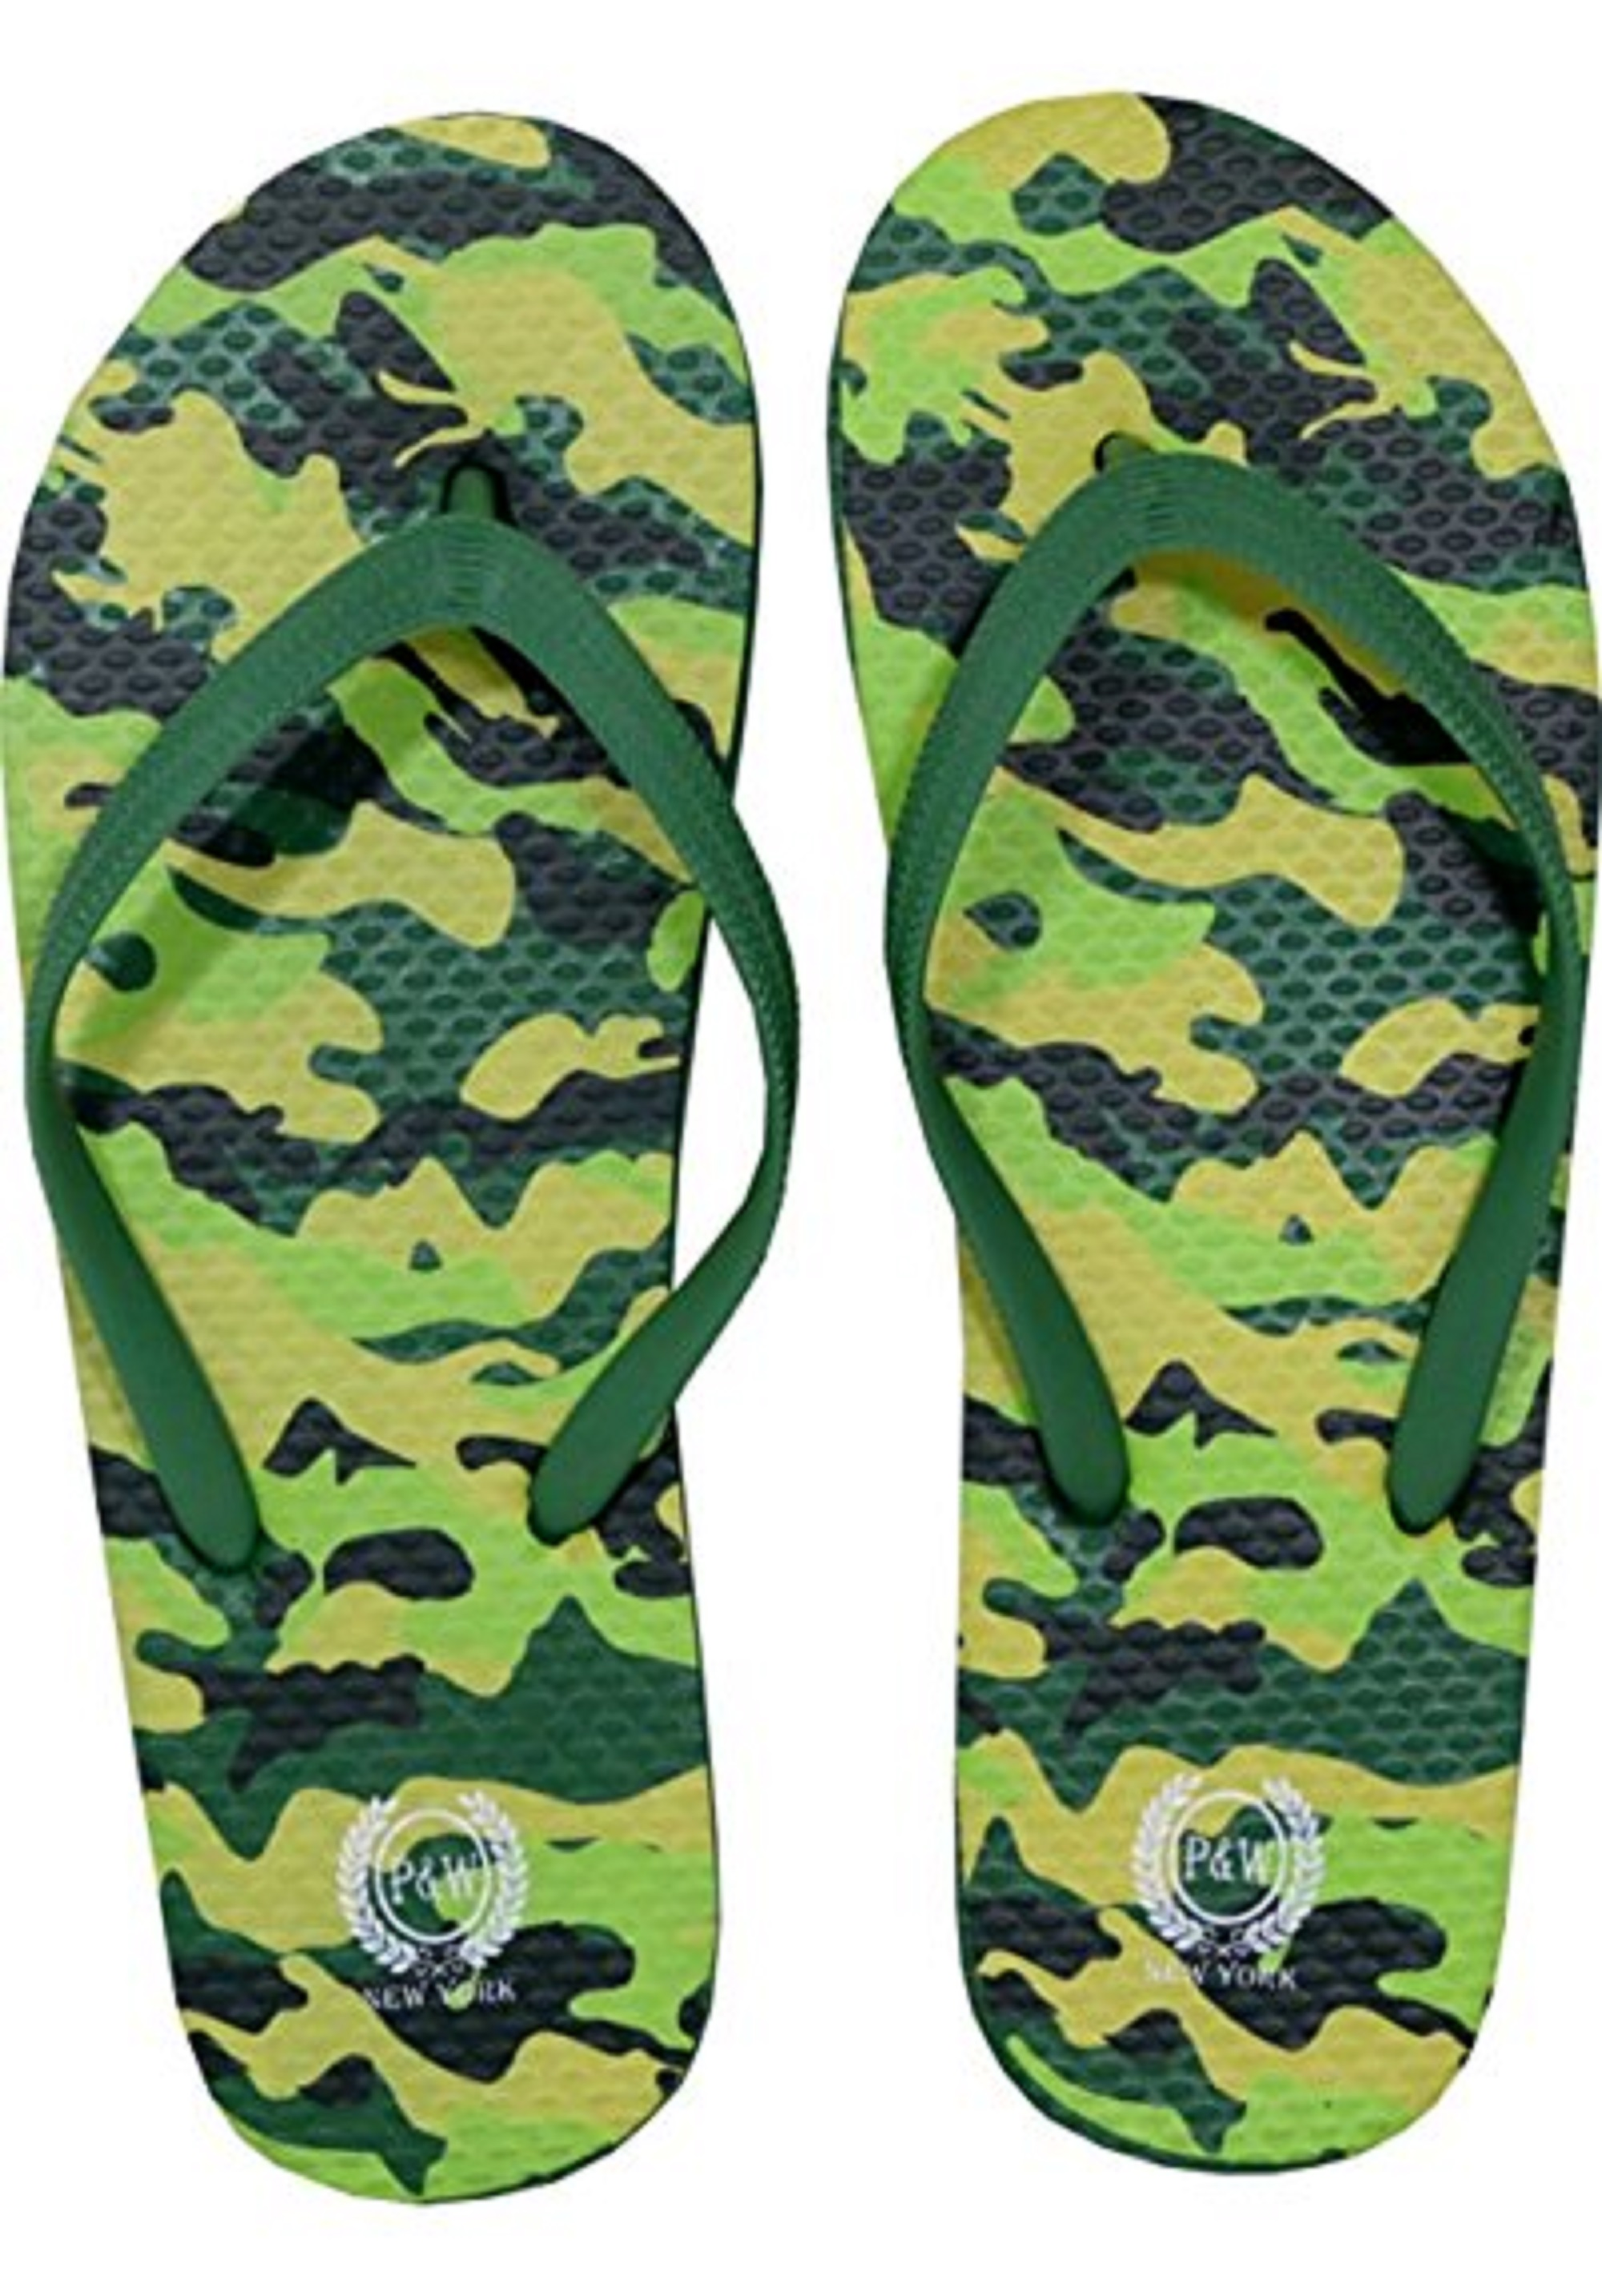 Mossad Men's Camo Military Collection Flip Flop Thong Sandals Camouflage Flip Flops Army Navy Marine Airforce (Small (7), Brown)